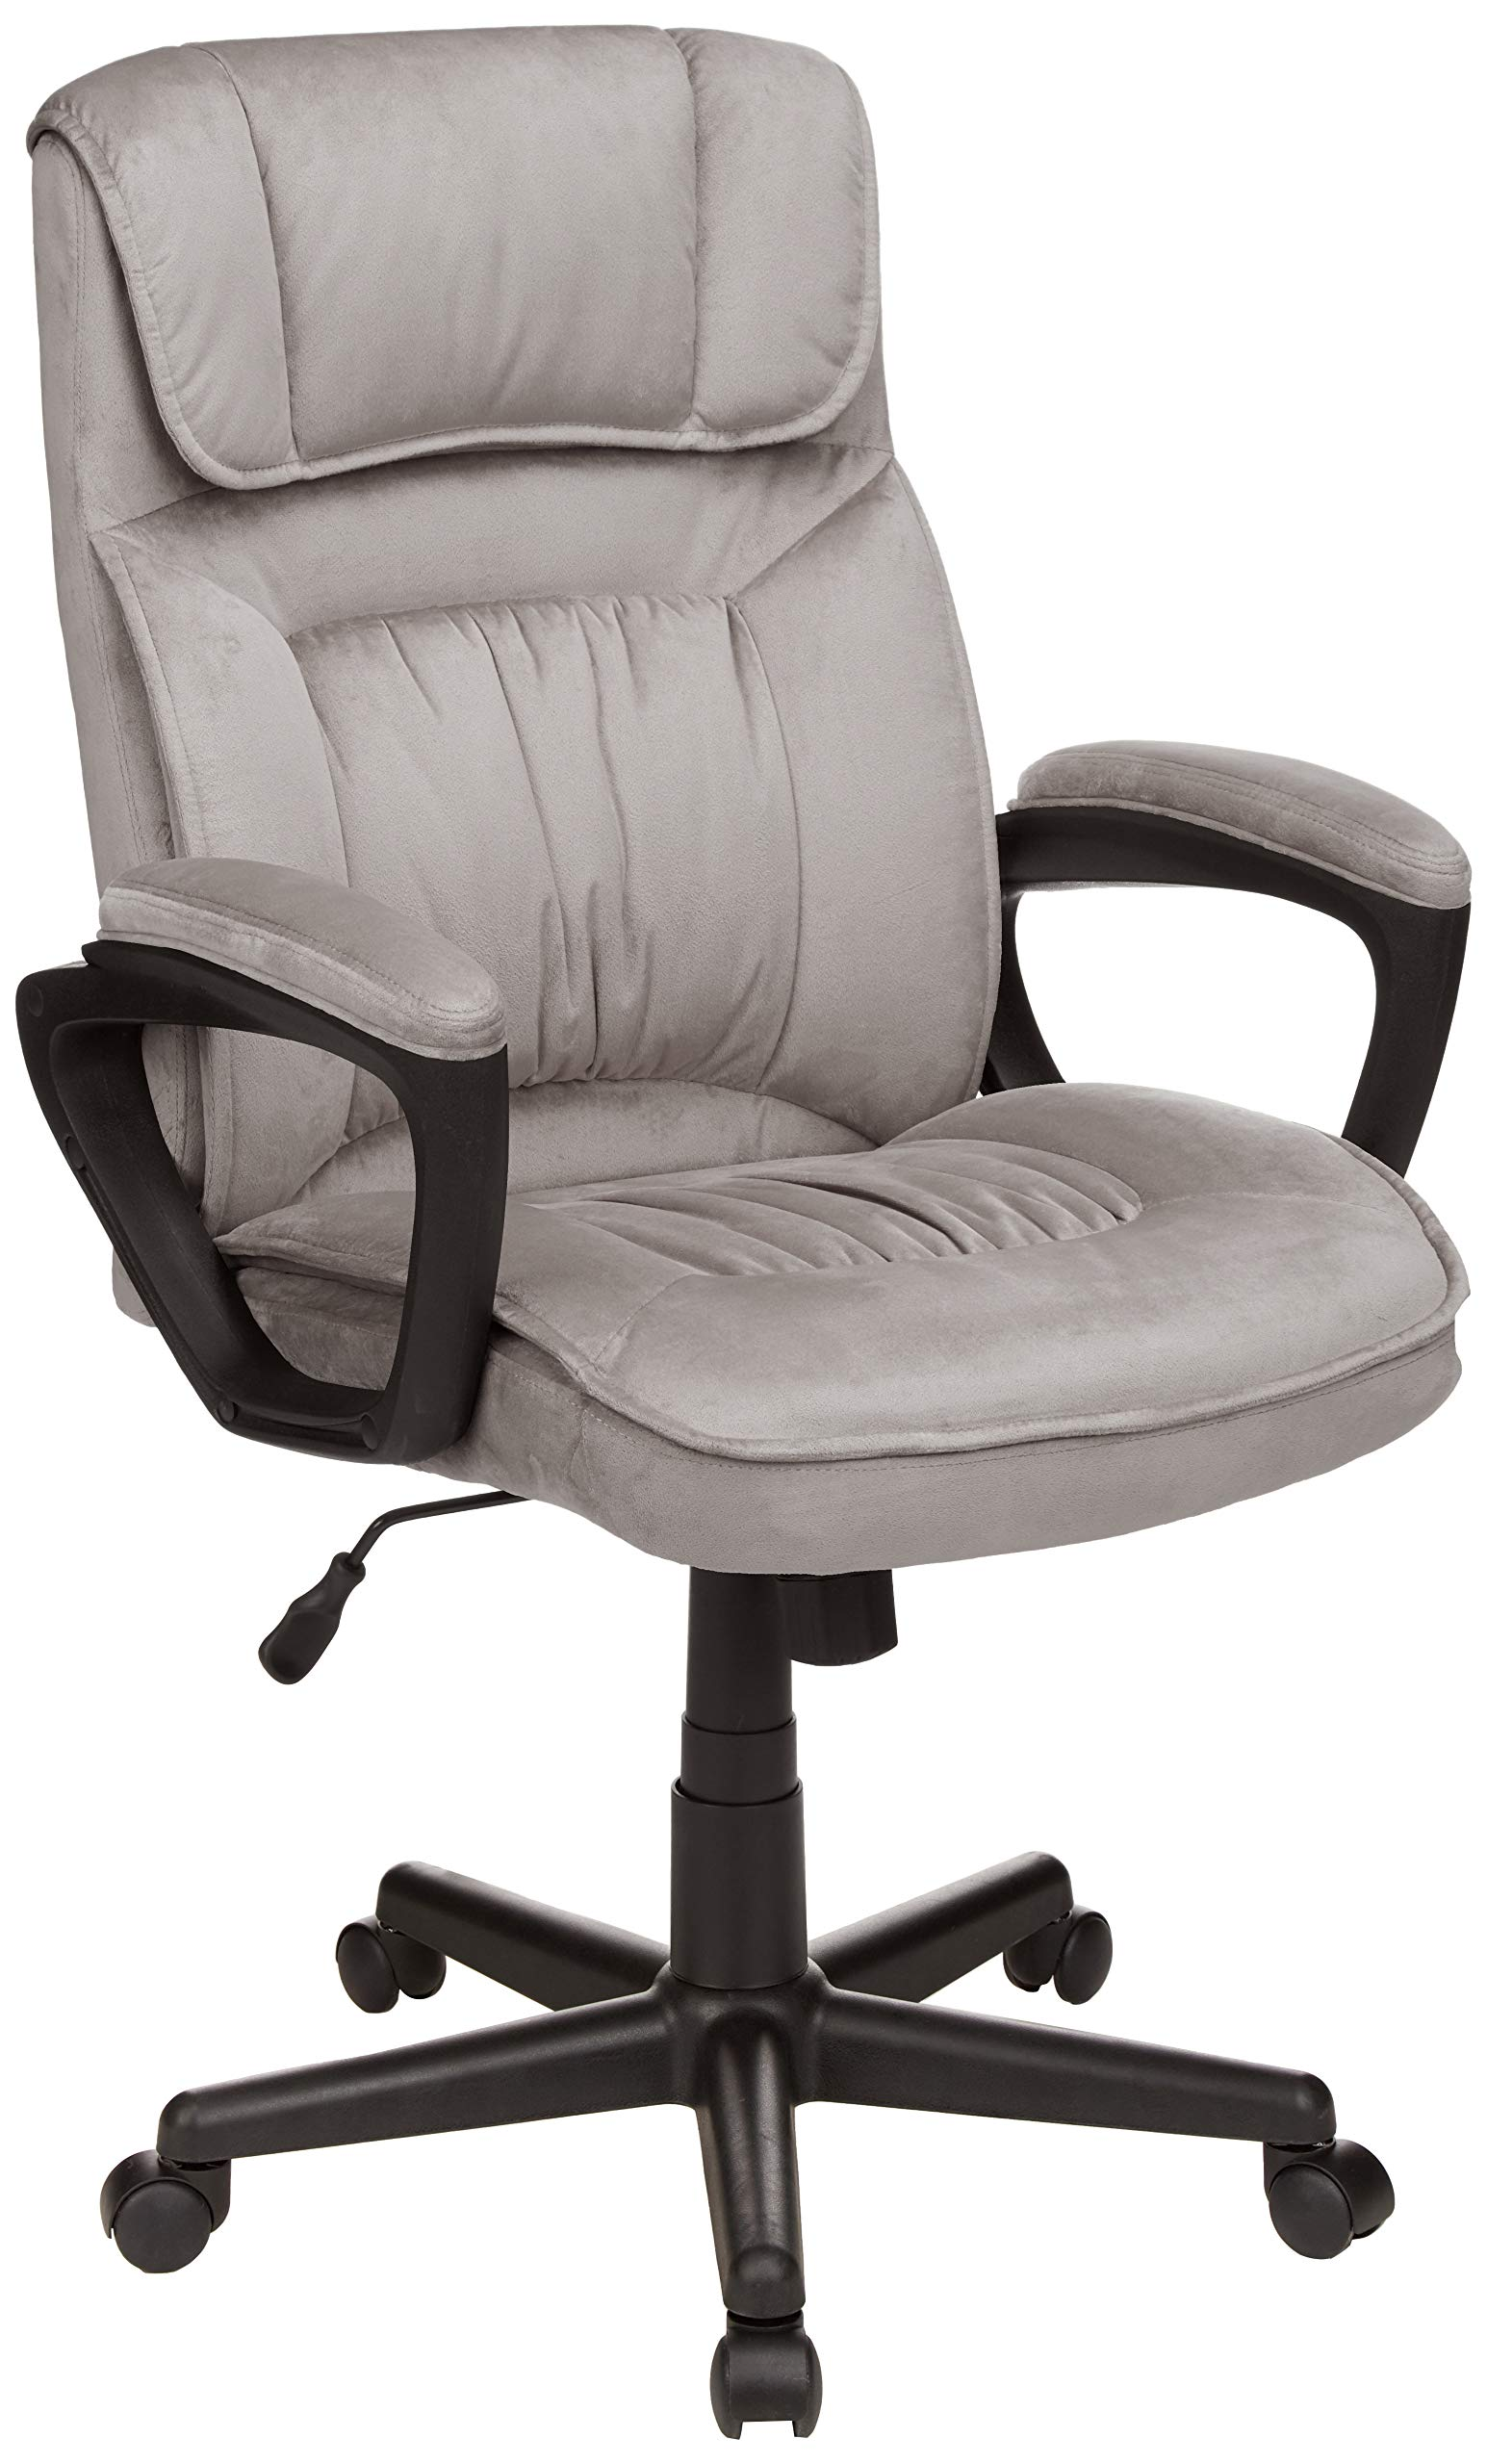 AmazonBasics Classic Office Desk Computer Chair - Adjustable, Swiveling, Microfiber - Light Gray by AmazonBasics